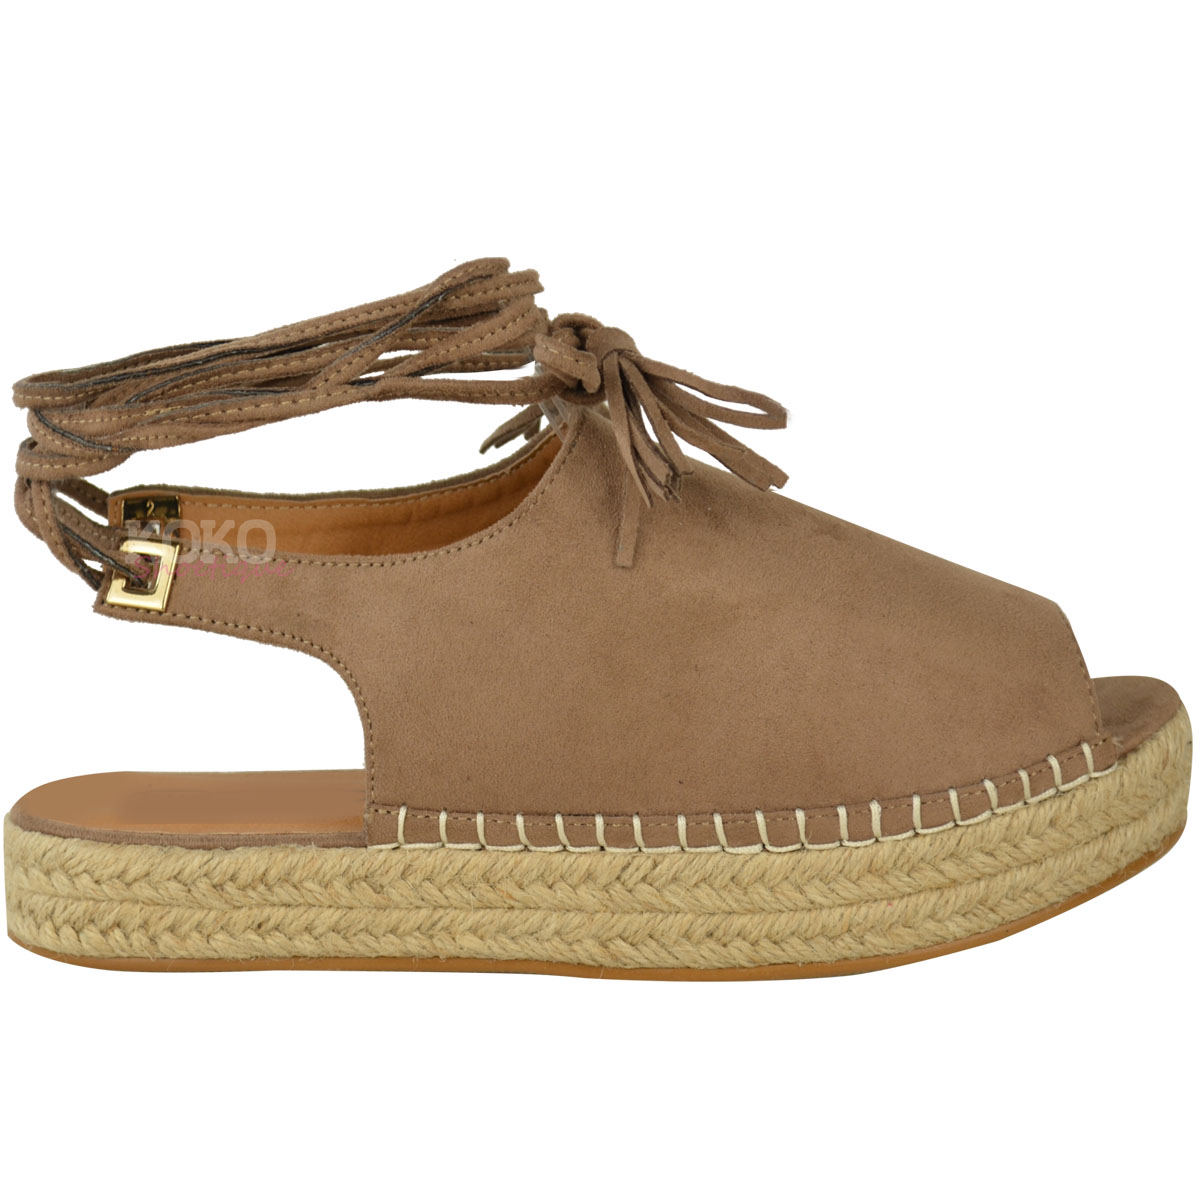 Ladies Canvas Wedge Shoes | Espadrilles Tie Up | Saludos Espadrilles